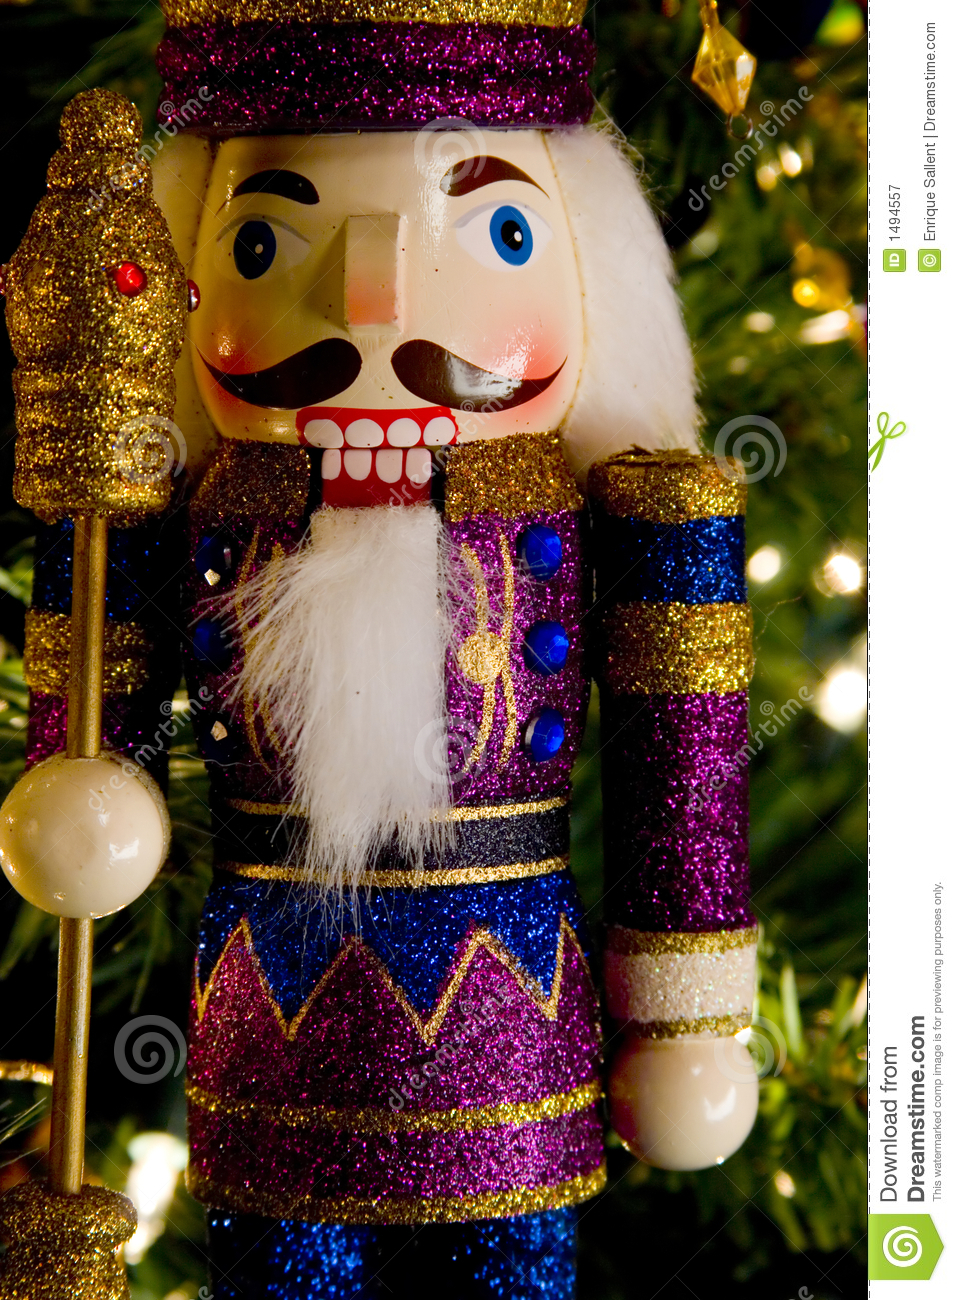 Nutcracker King Wood Toy Royalty Free Stock Photography